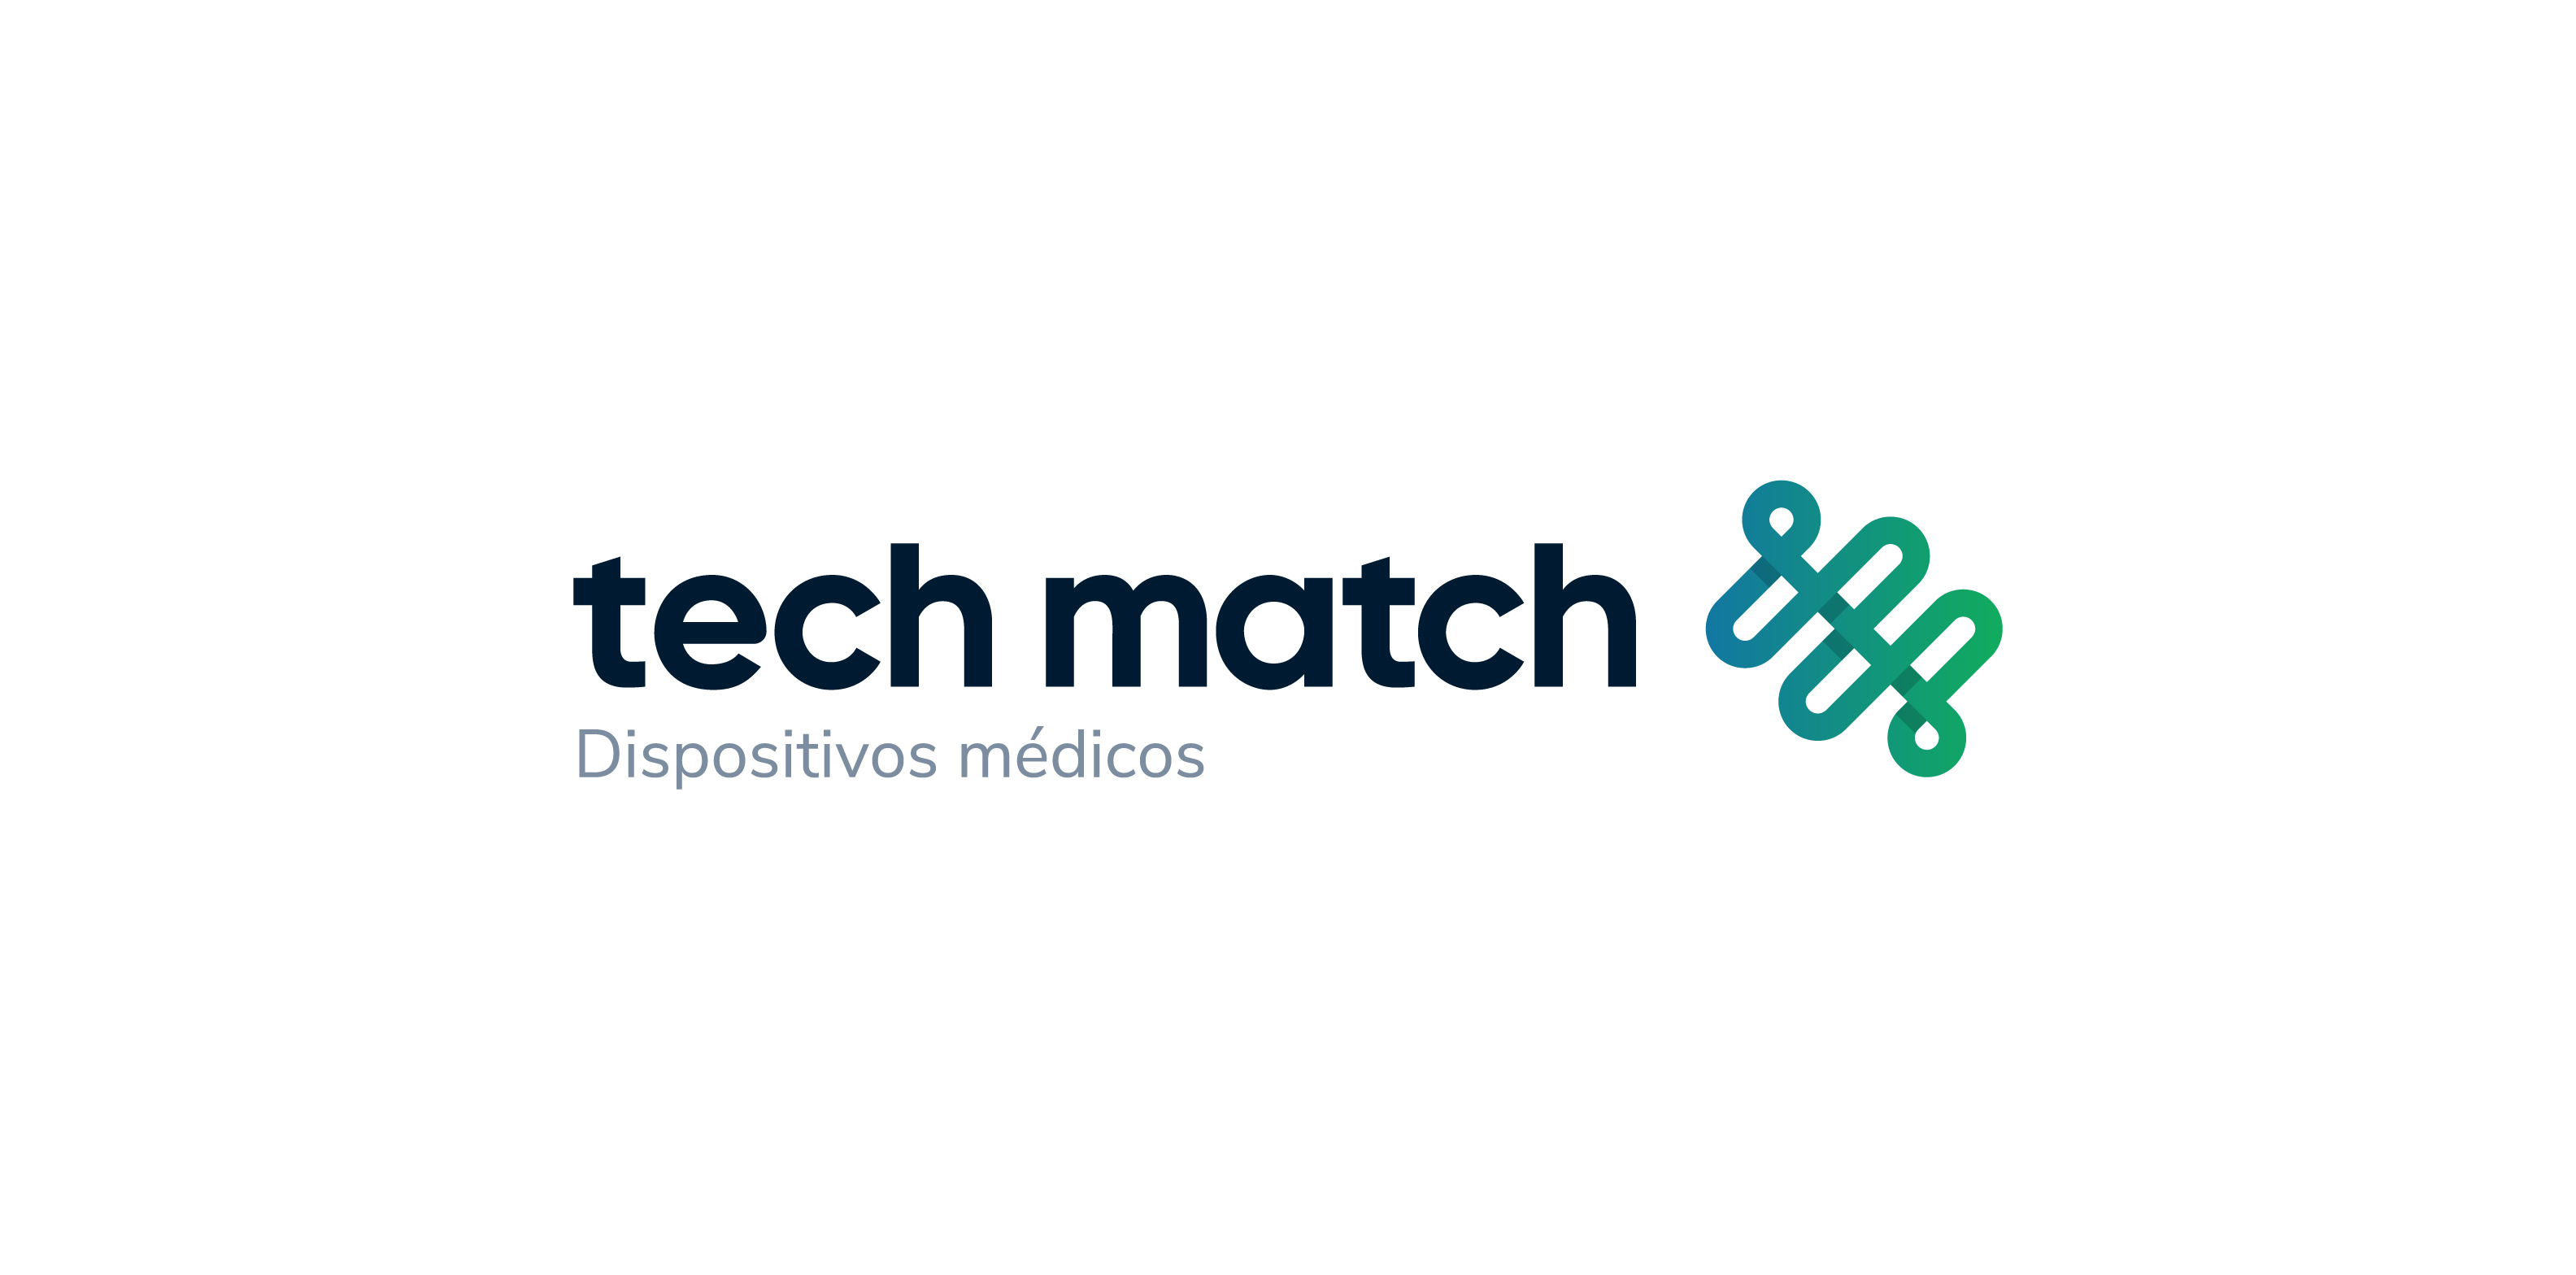 techmatch logo